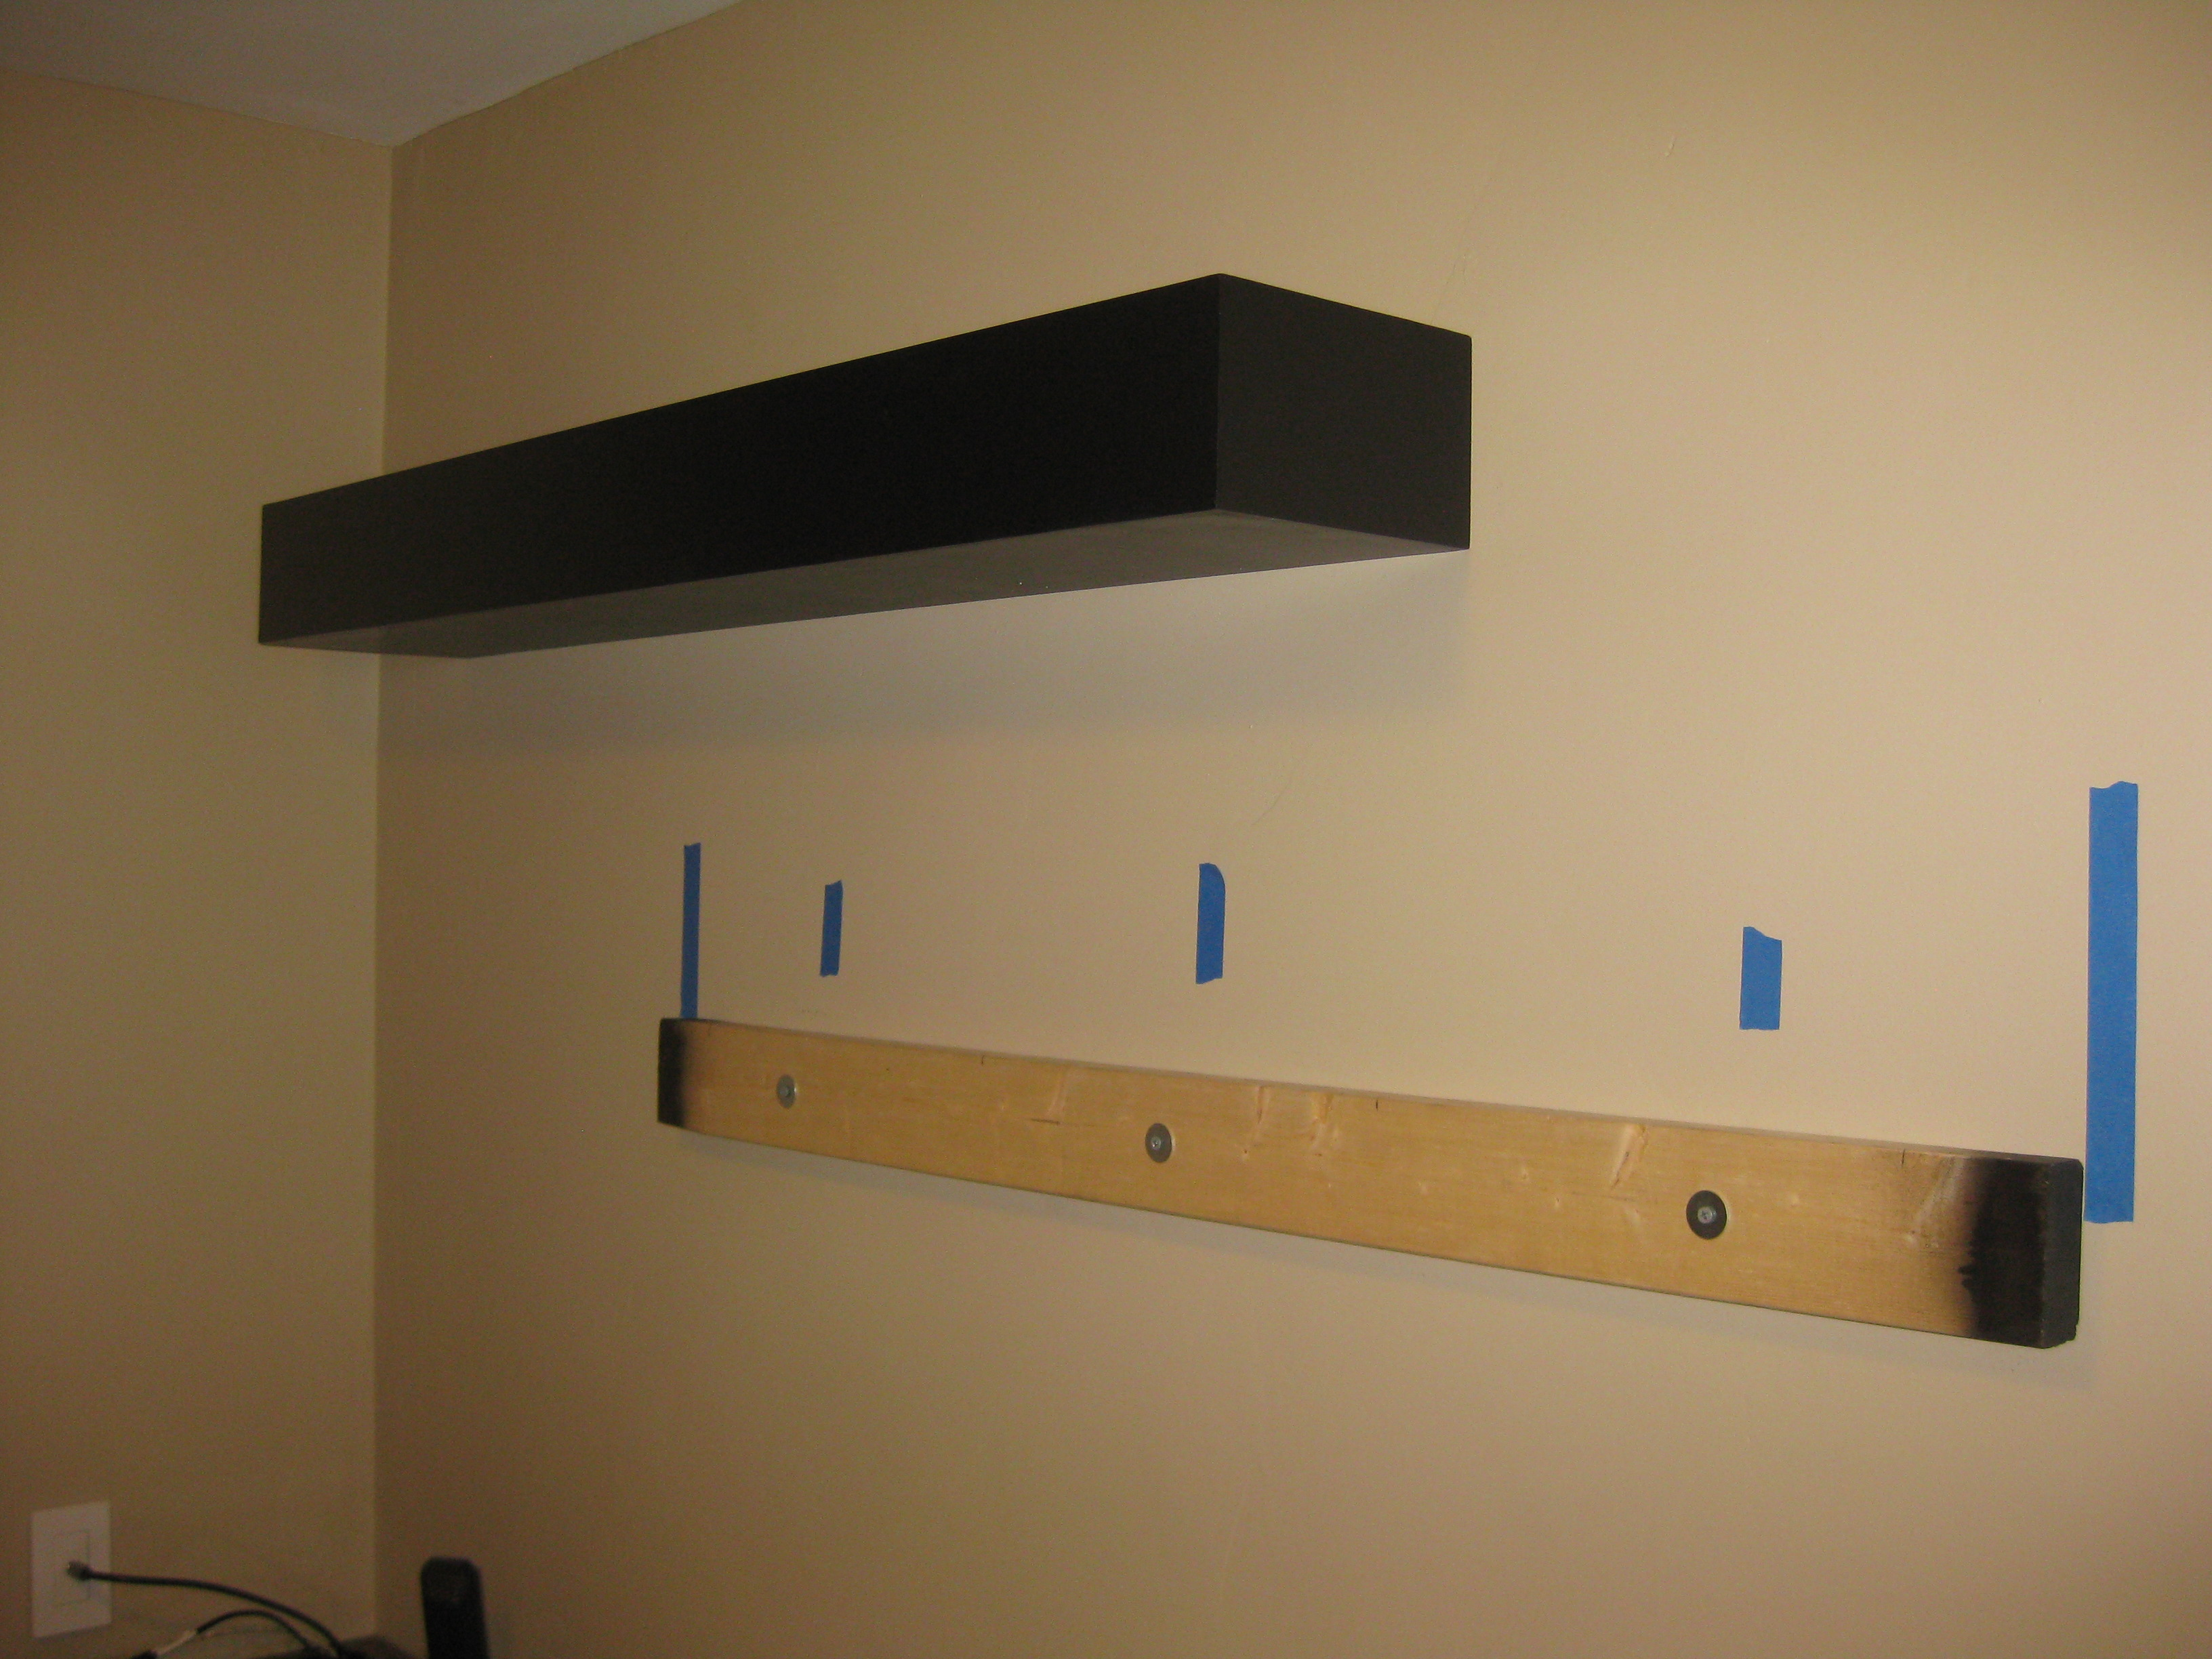 Picture of Hang the Shelves